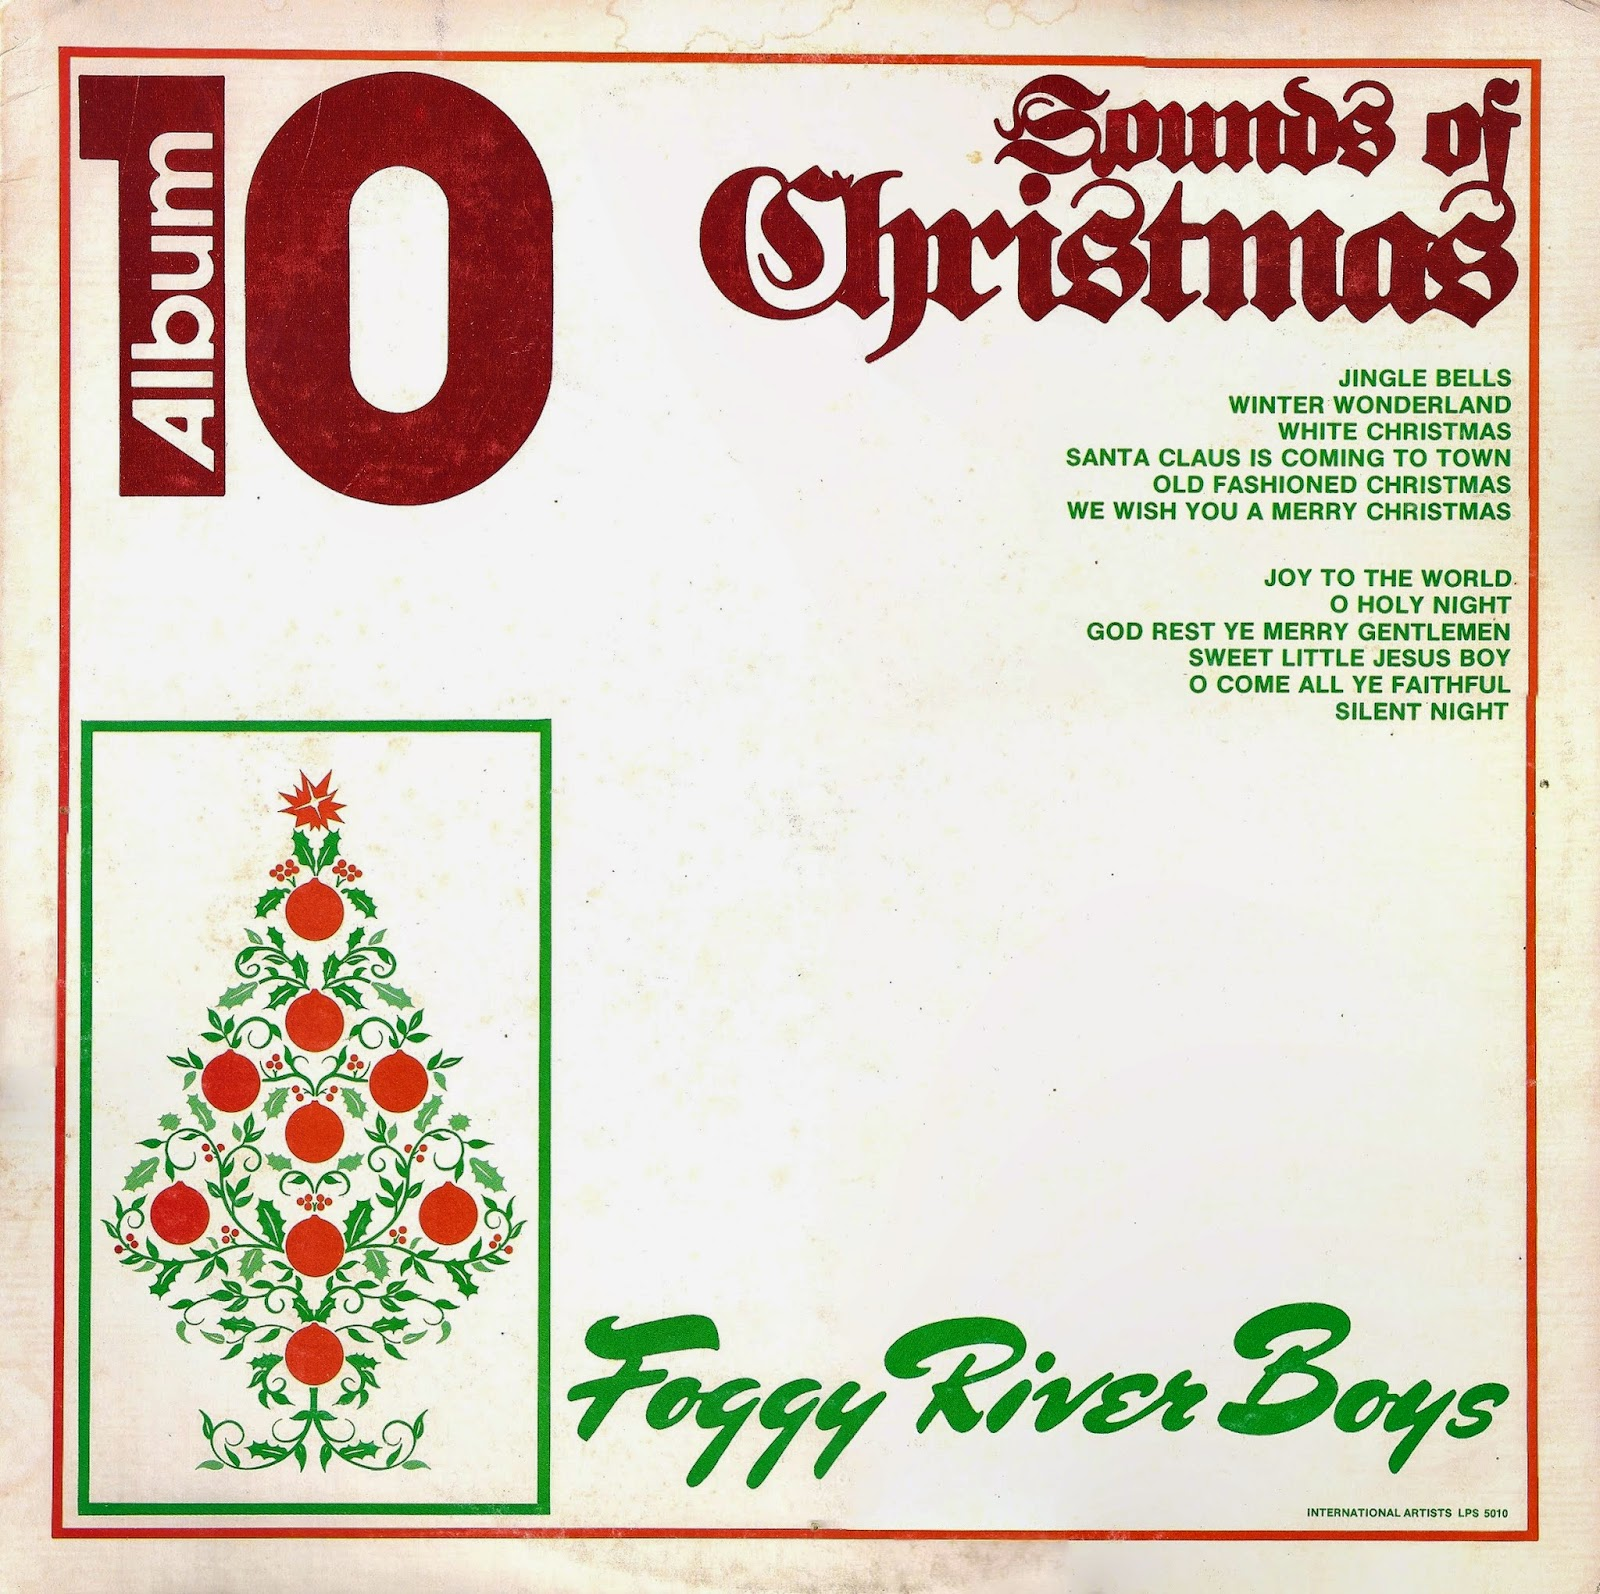 Merry and Bright!: Sounds of Christmas with the Foggy River Boys